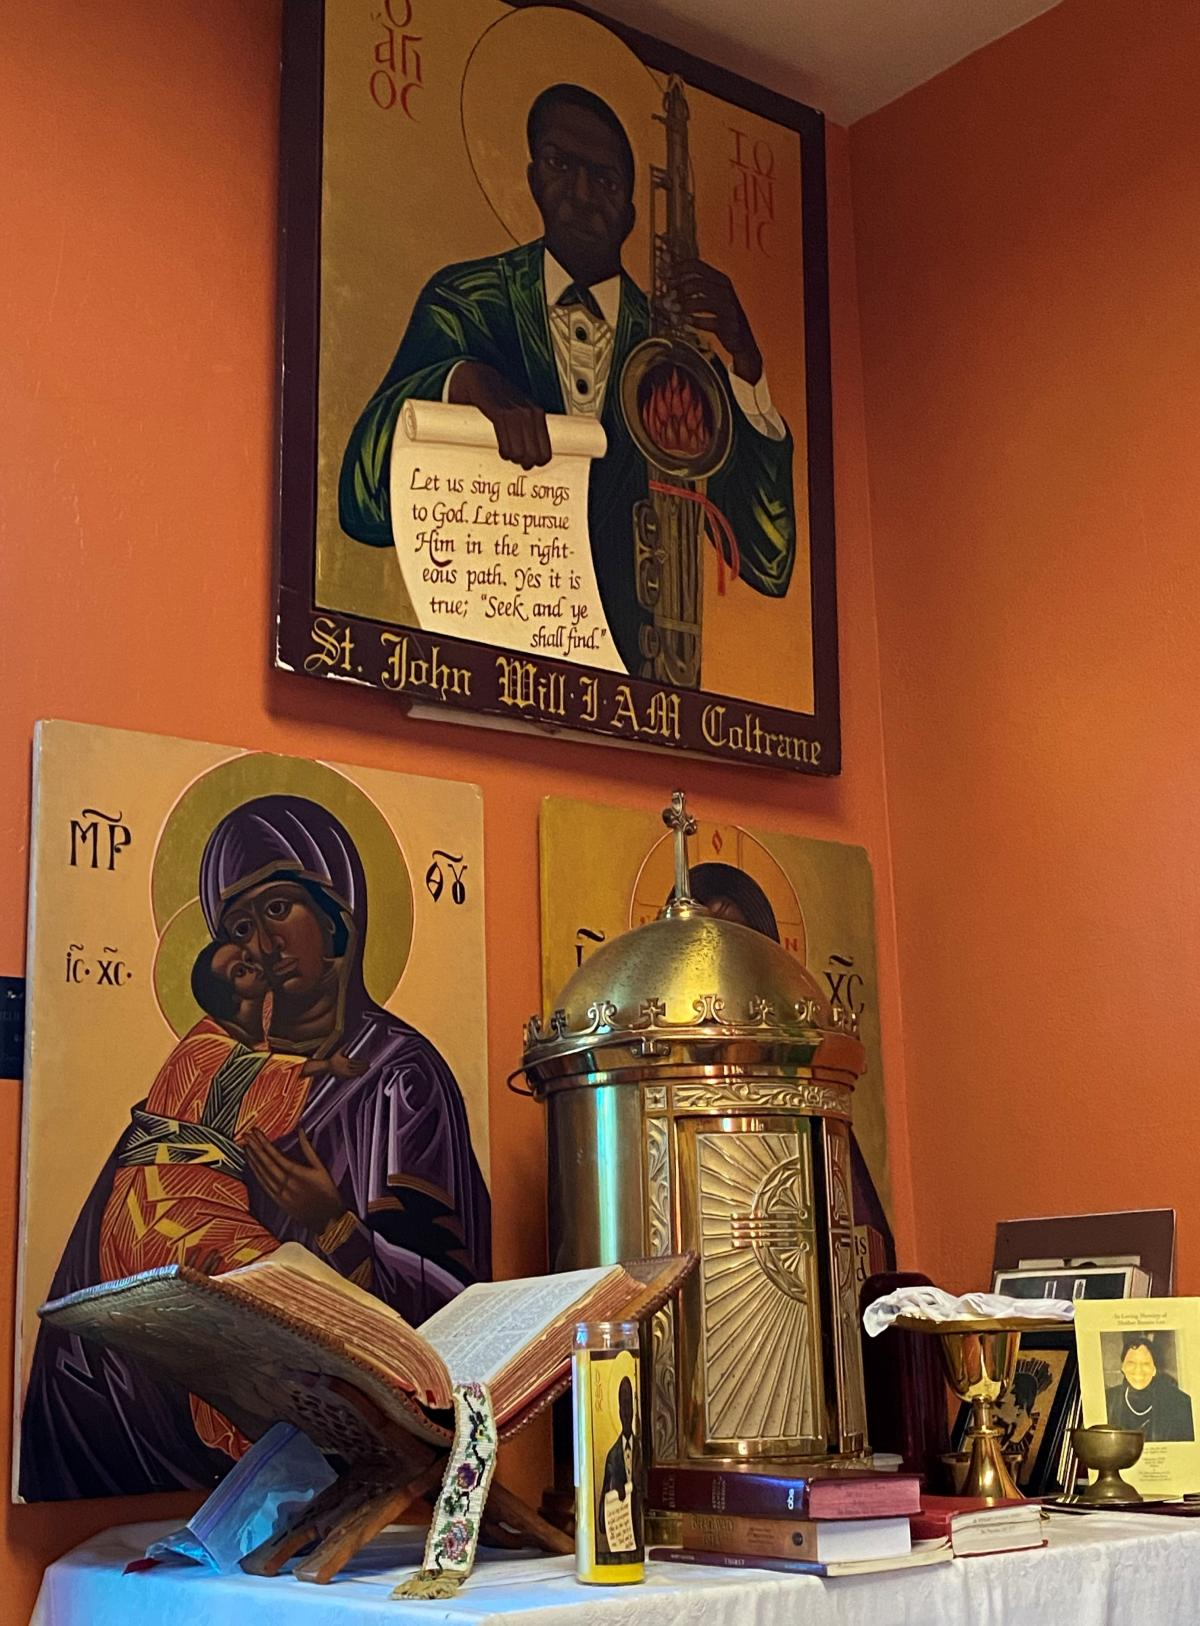 Byzantine-style icons, including ones of John Coltrane, the Virgin Mary and Jesus at the Coltrane-devoted church.